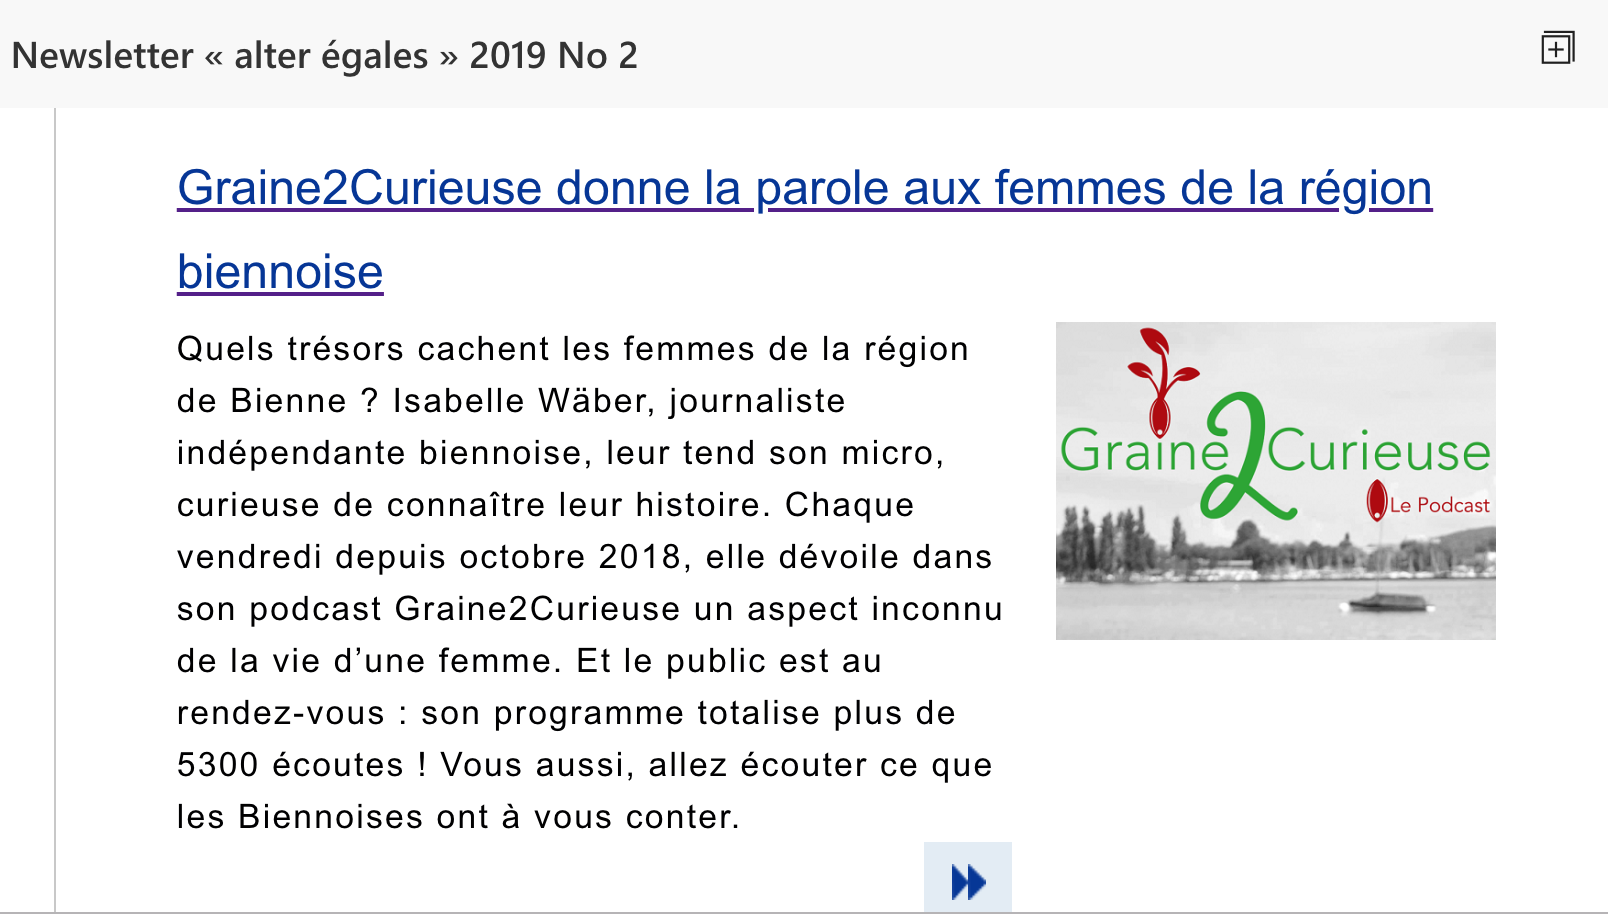 Newsletter «Alter égales»